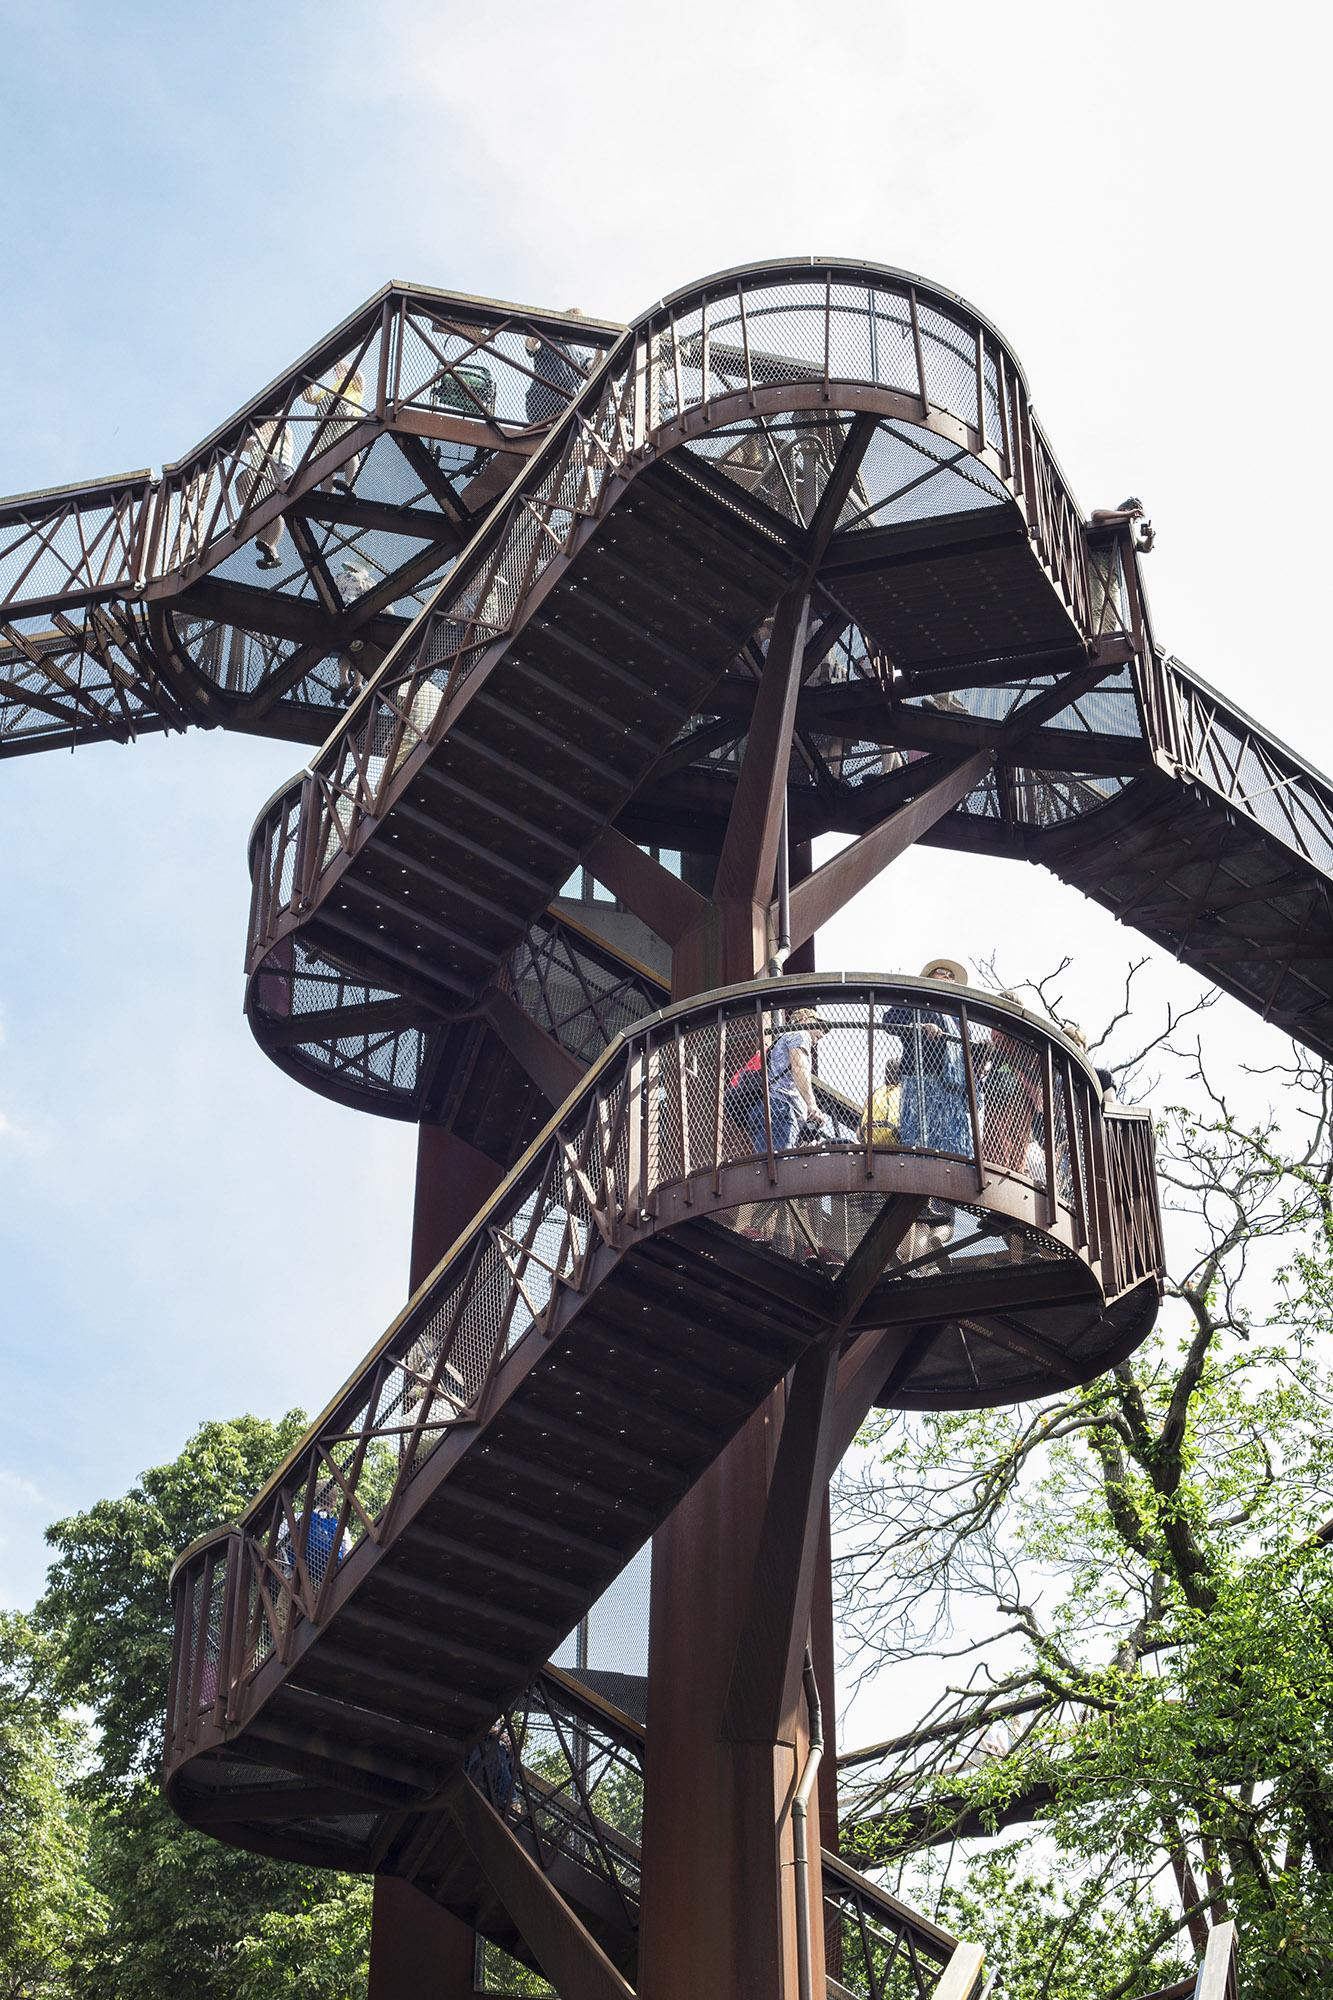 Structure of the treetop walkway bridge through the trees at Kew. – © Bruno Mameli / Shutterstock